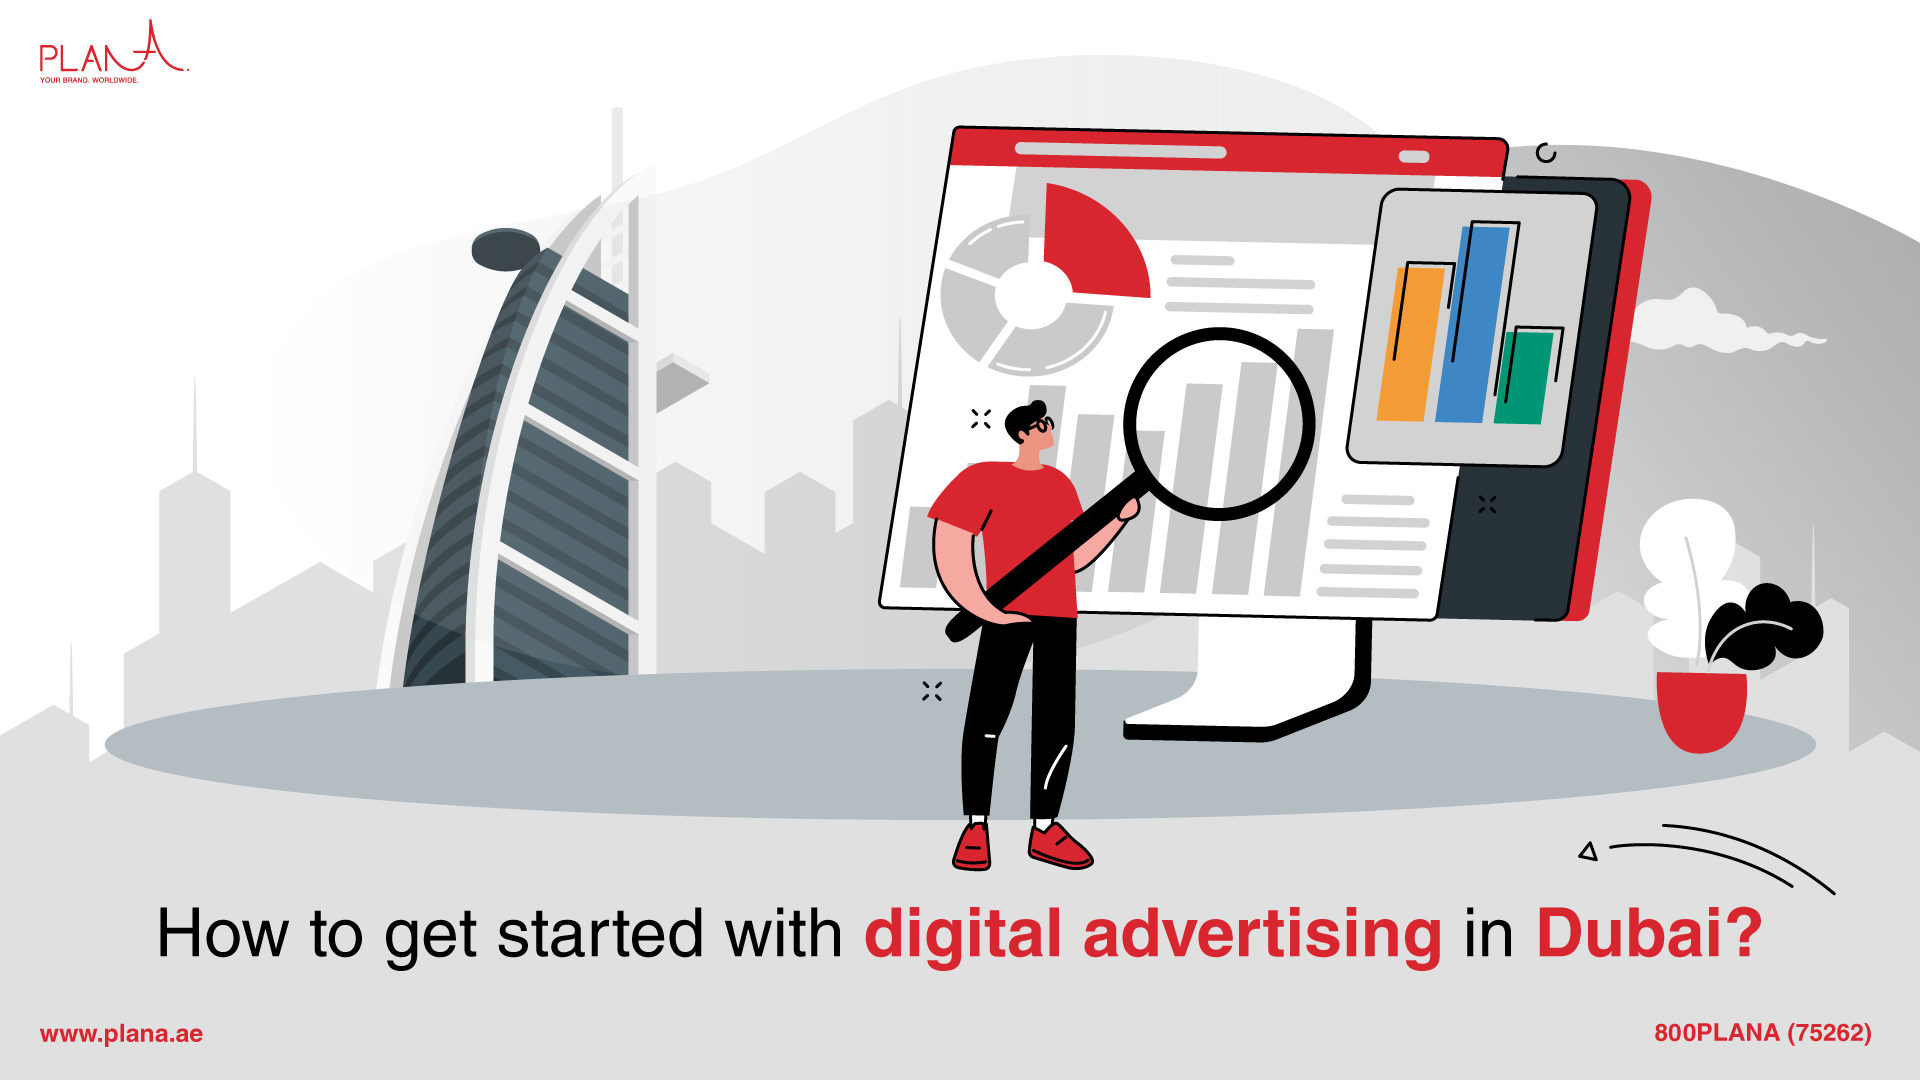 How to Get Started With Digital Advertising in Dubai?